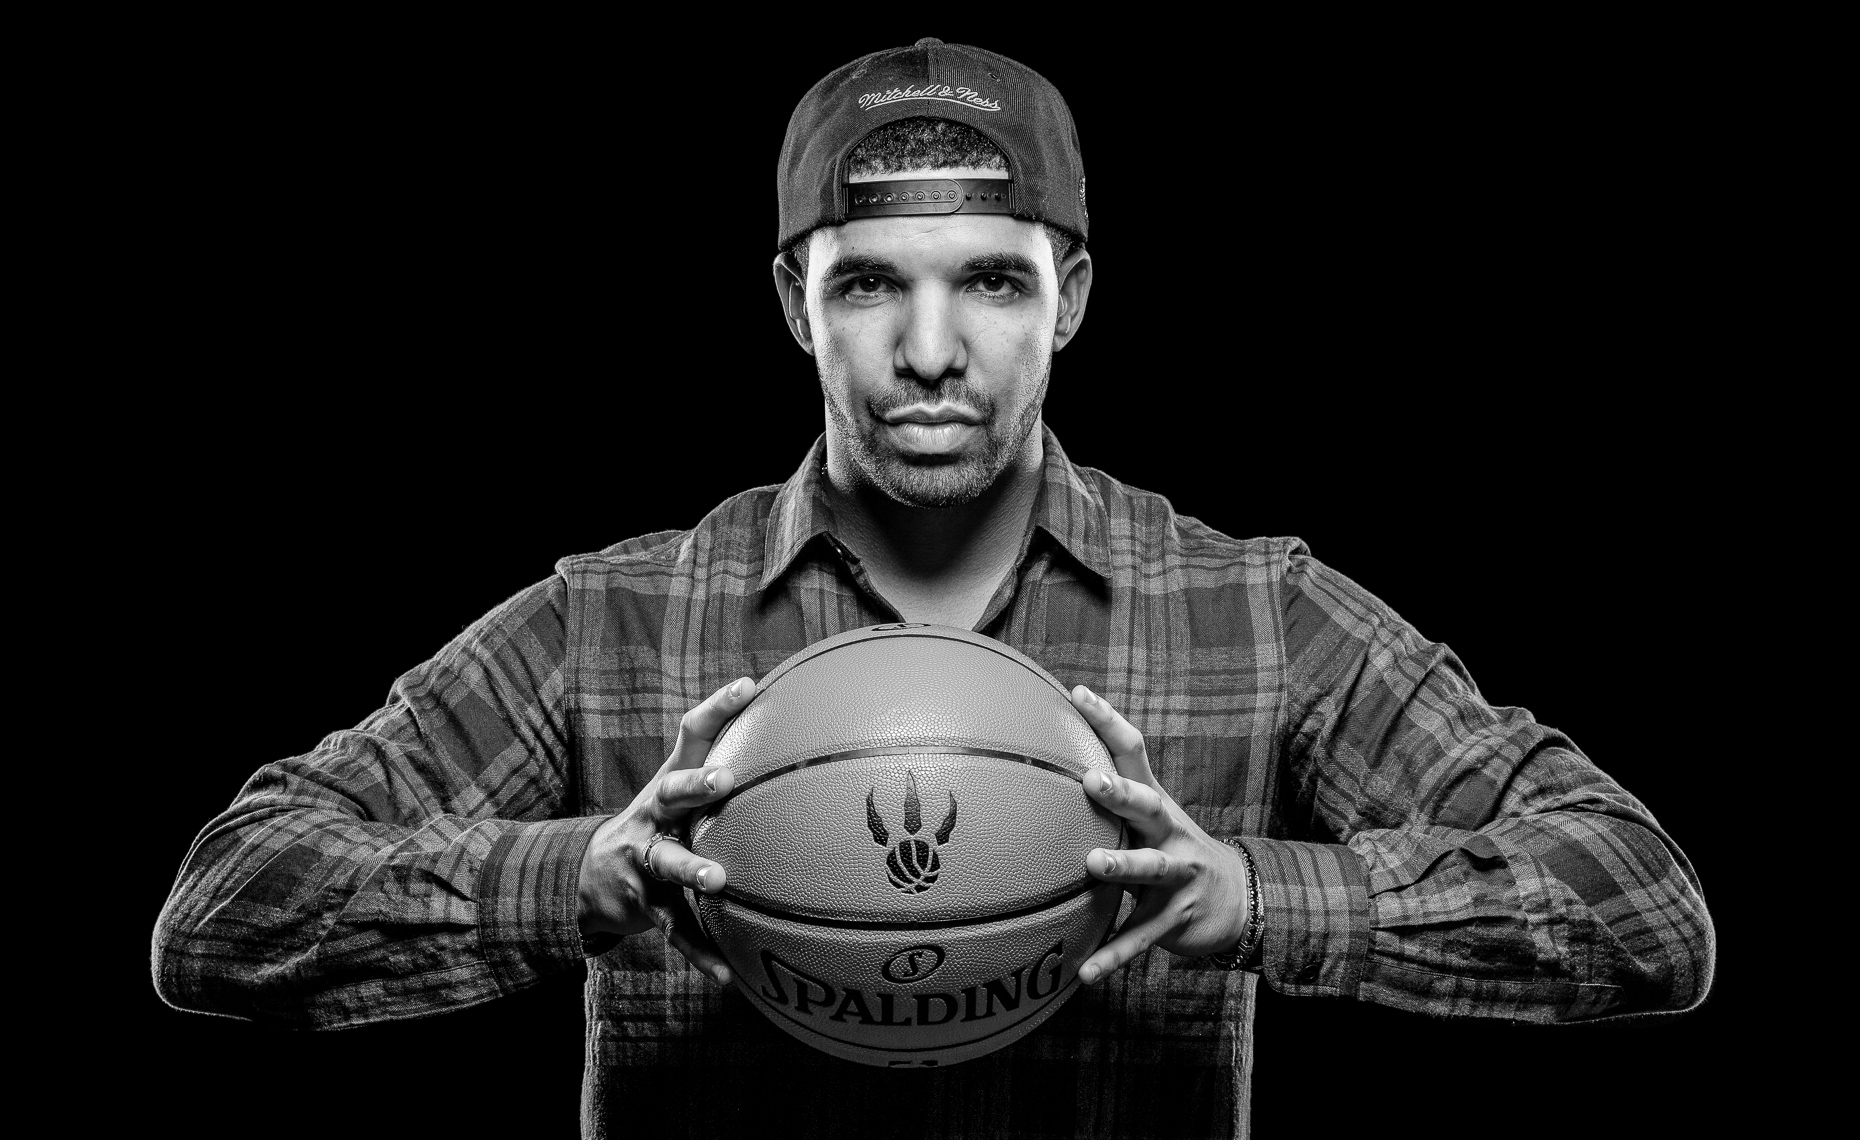 SEALE_PORTRAIT_DRAKE